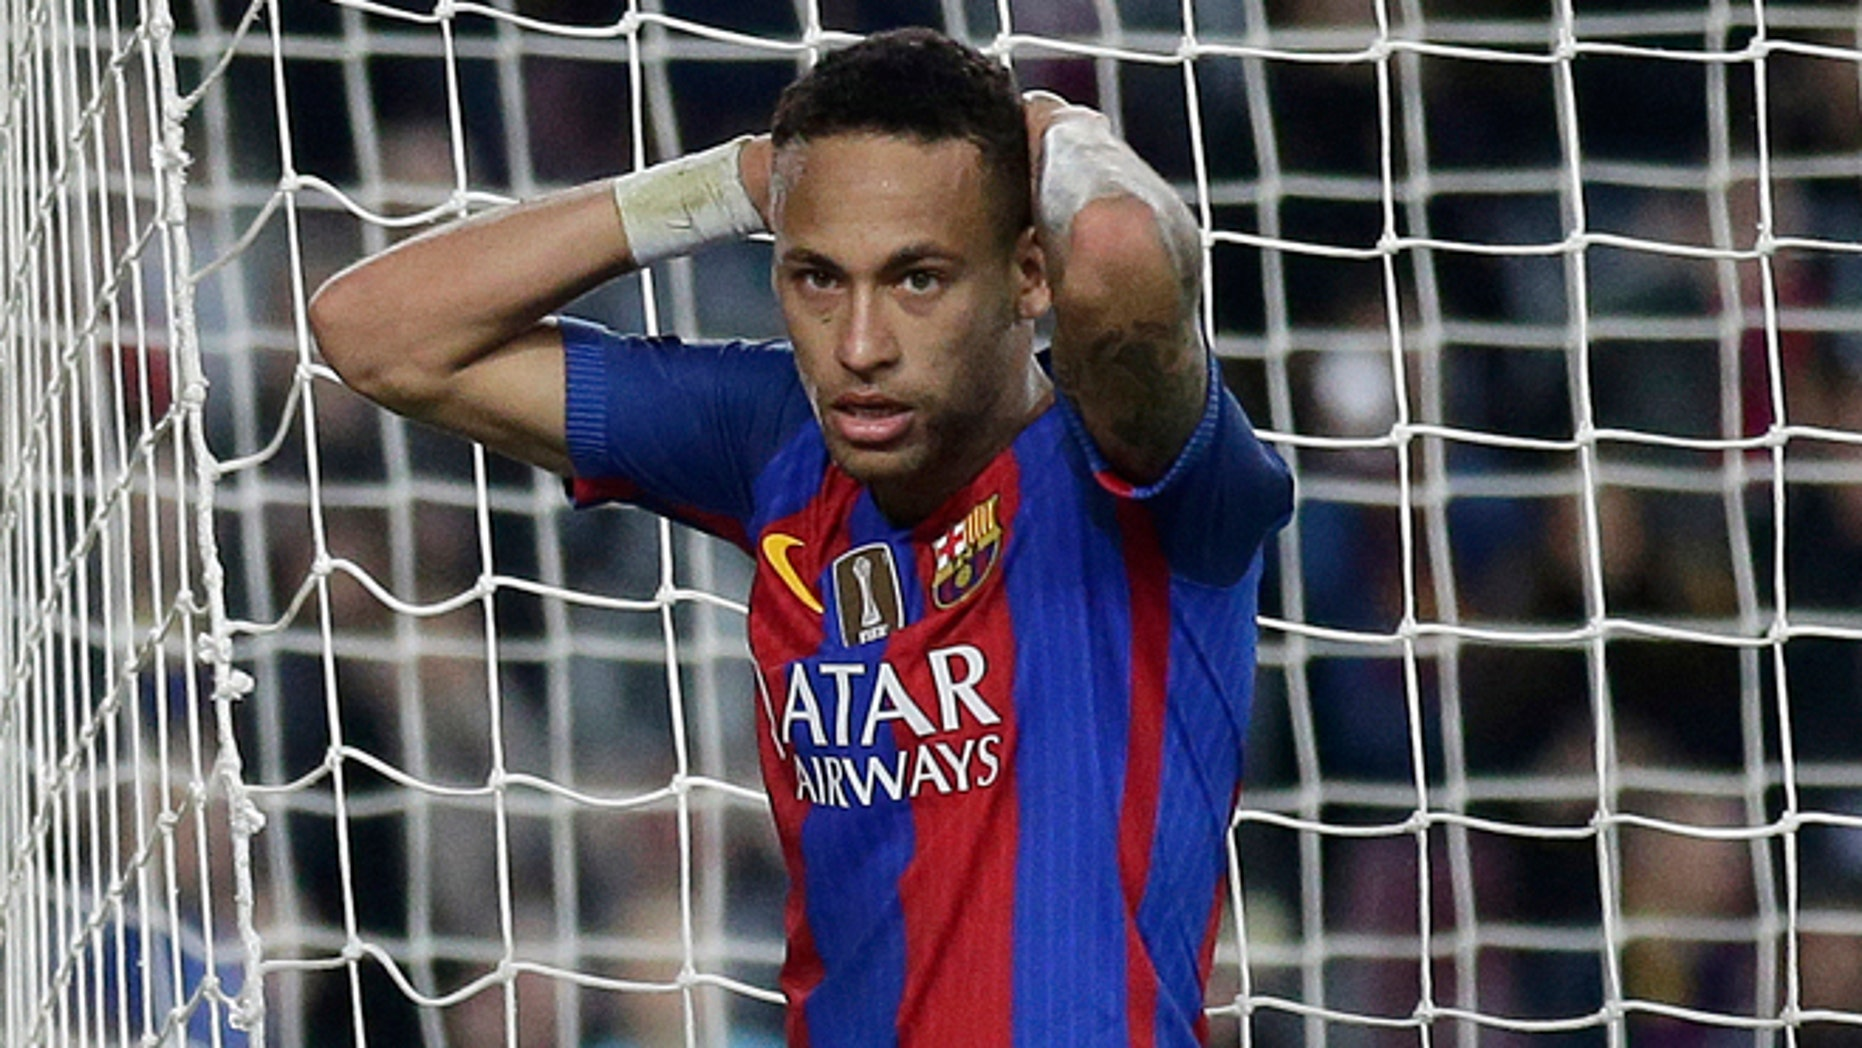 FILE - In this Saturday, Nov. 19, 2016 file photo, FC Barcelona's Neymar reacts during the Spanish La Liga soccer match between FC Barcelona and Malaga at the Camp Nou in Barcelona, Spain. Spanish prosecutors are seeking a two-year prison sentence and a $10.6 million fine for Neymar on corruption charges because of alleged irregularities during his transfer from Brazilian club Santos to Barcelona, it was reported on Wednesday, Nov. 23, 2016. (AP Photo/Manu Fernandez, File)